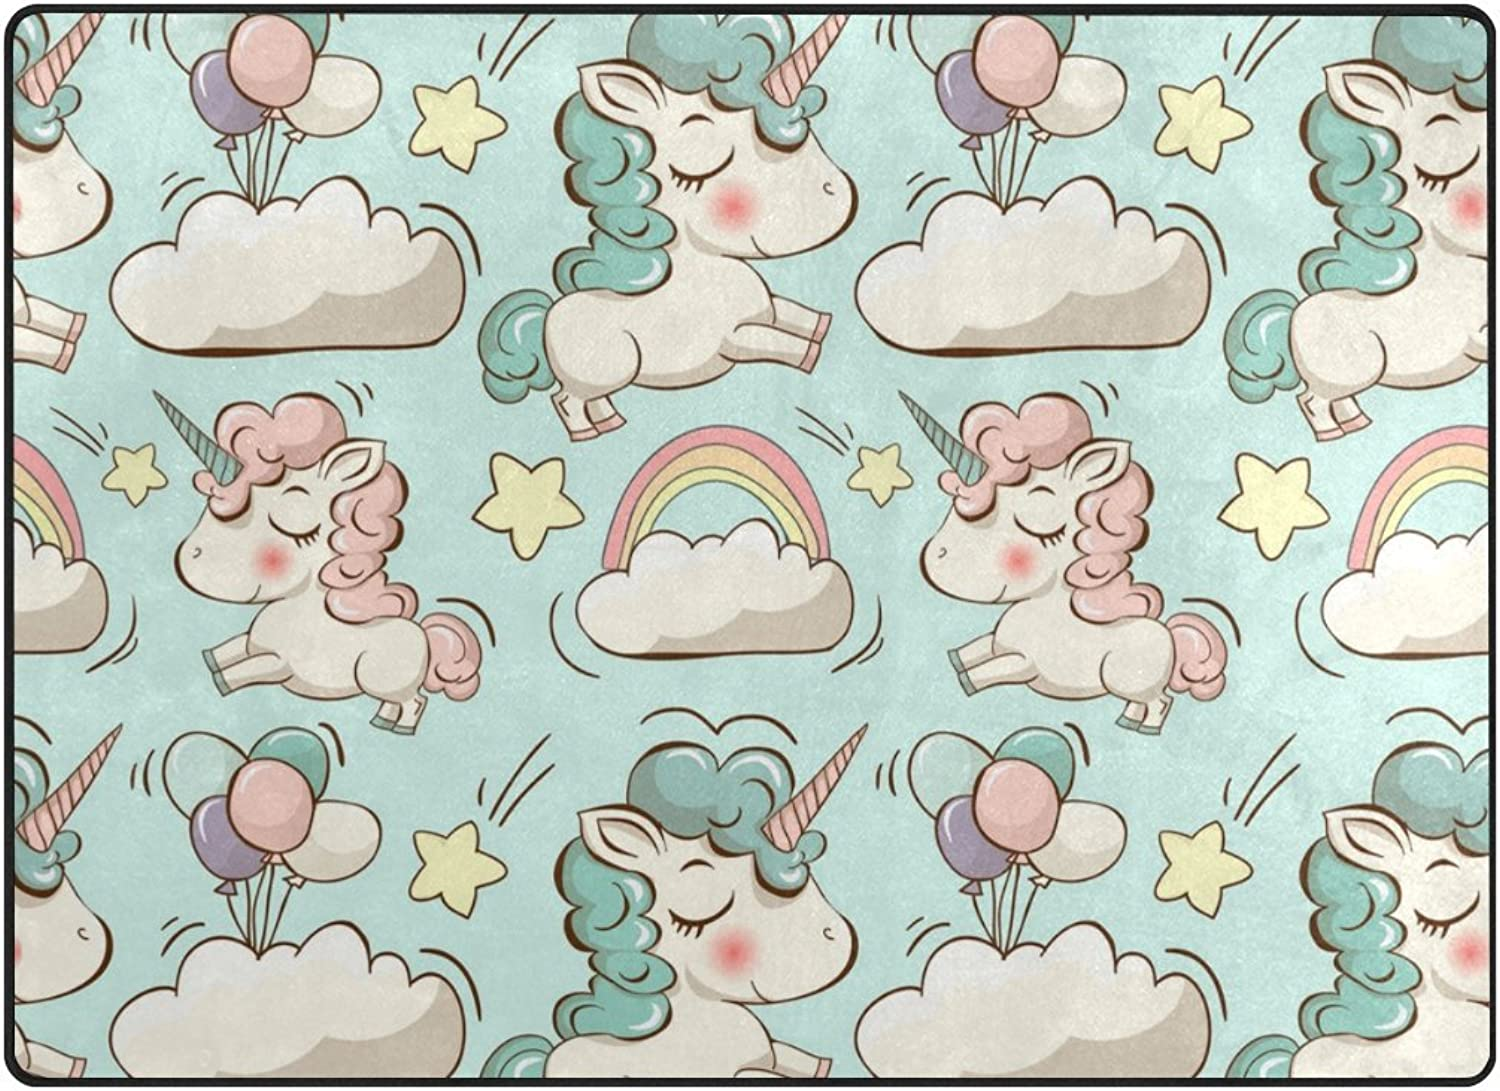 SUABO 80 x 58 inches Area Rug Non-Slip Floor Mat Cute Unicorns and Clouds Printed Doormats for Living Room Bedroom